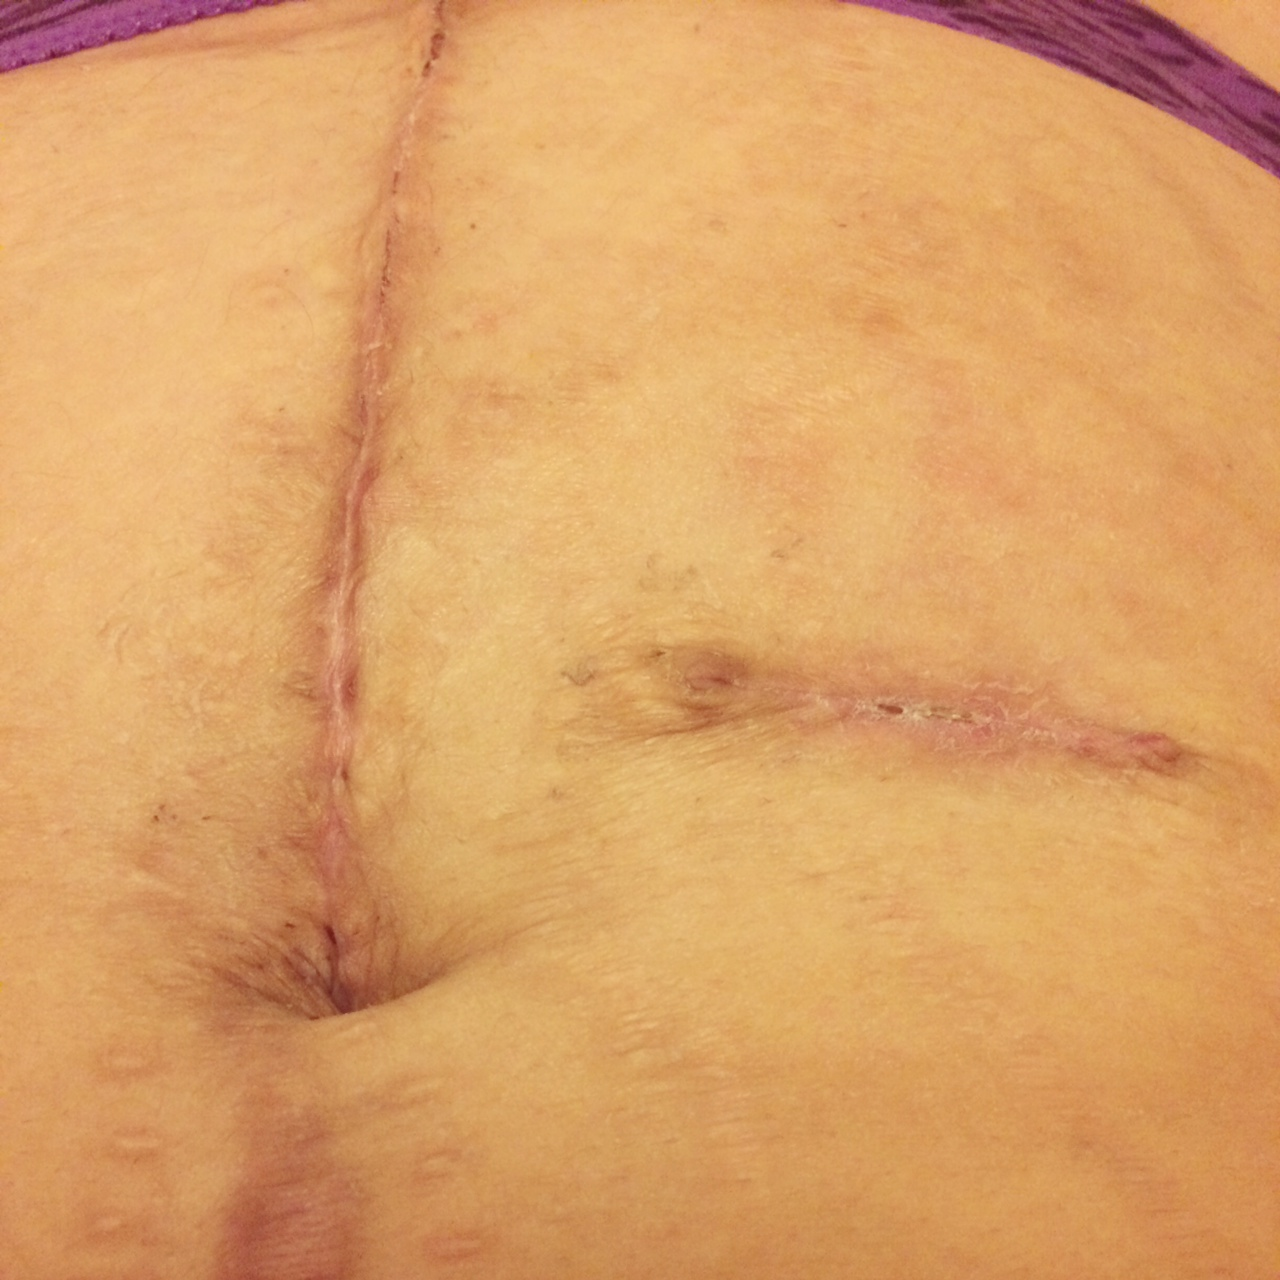 ileostomy j pouch scars post op pictures